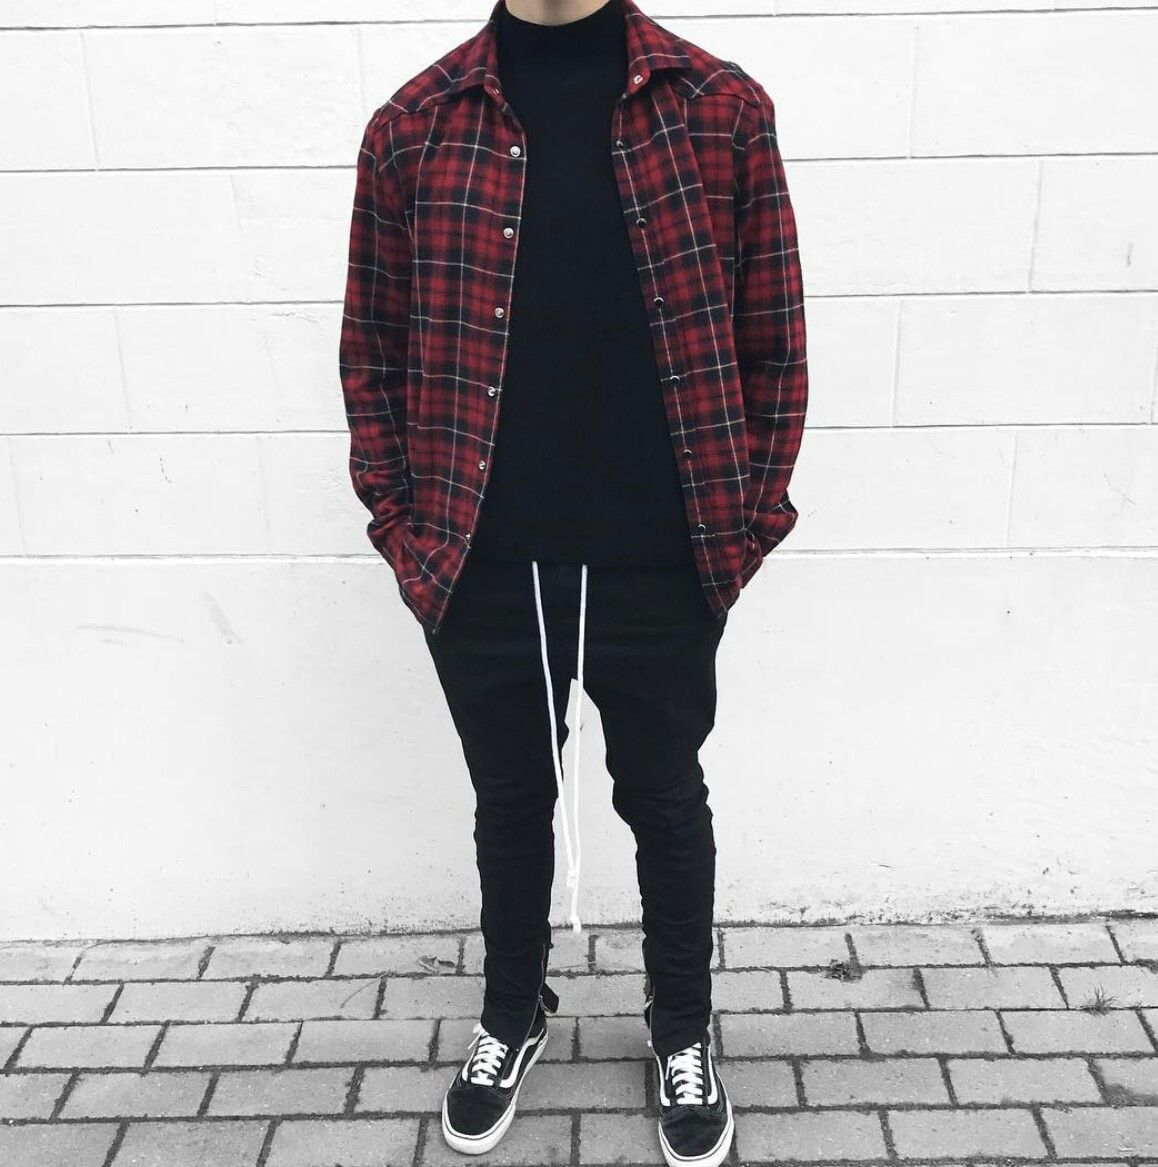 Flannel outfits black men  Pin by Dezy from Adventure Time on mens fashion  Pinterest